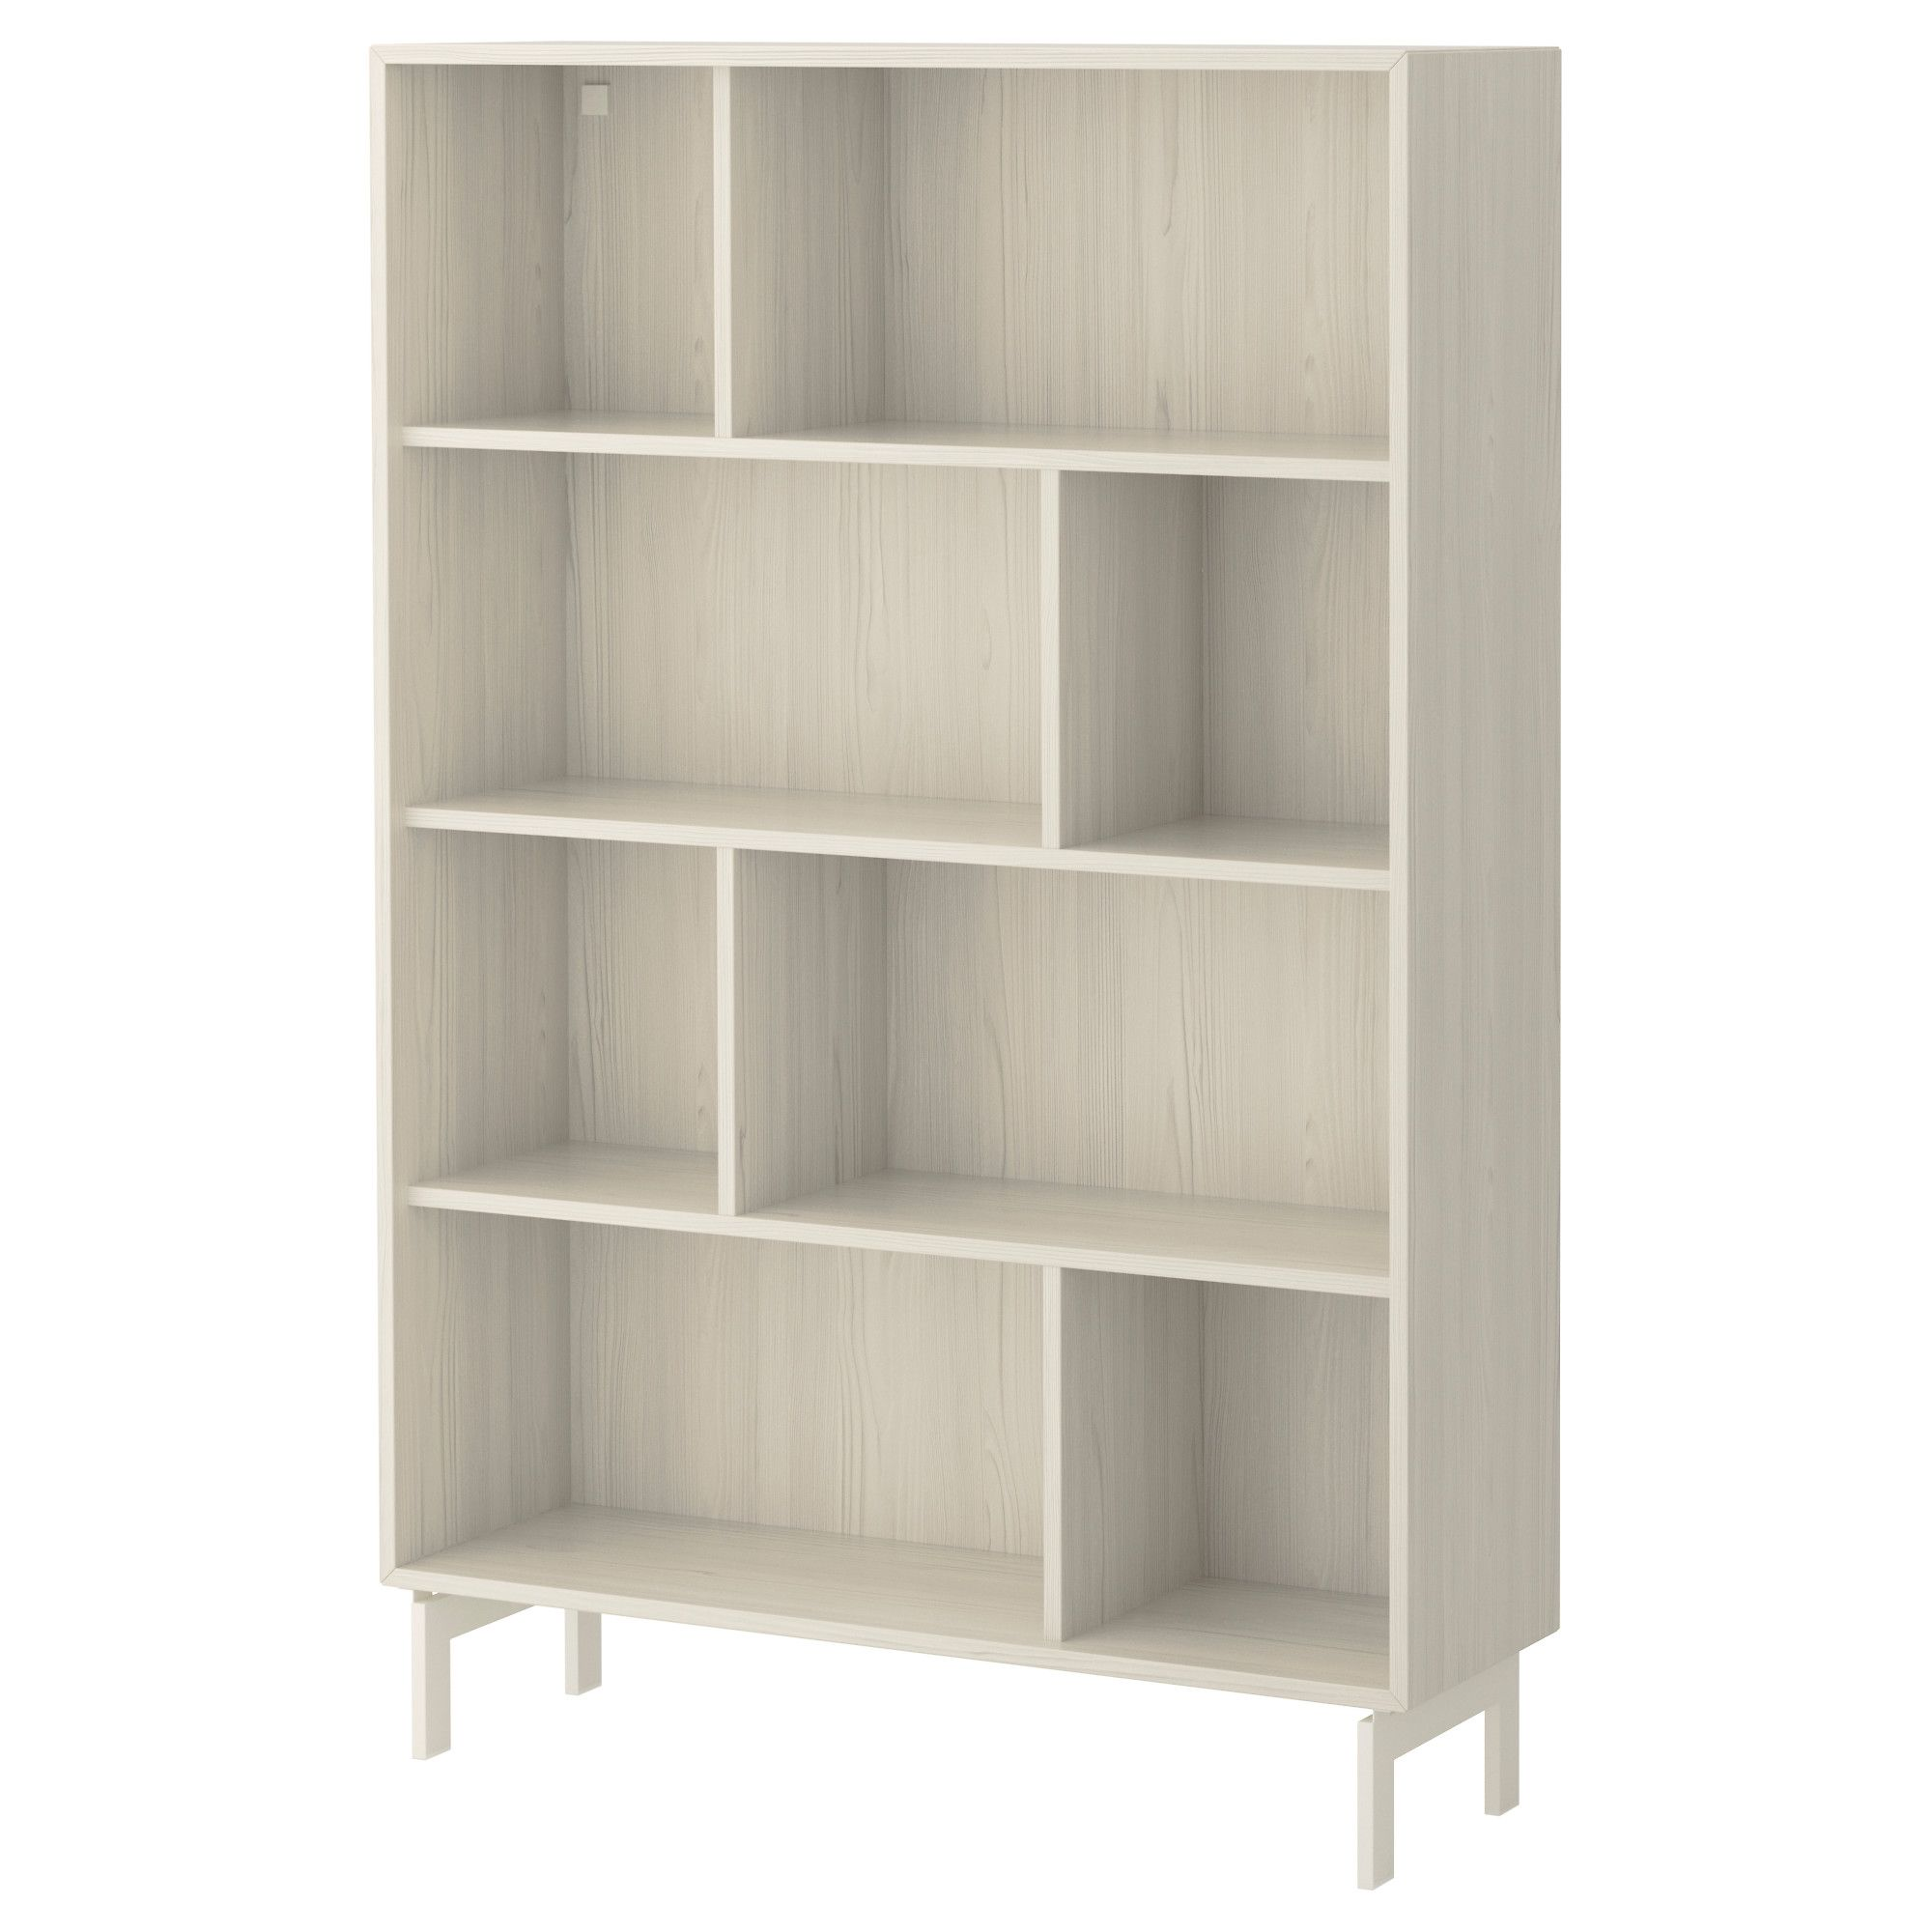 Furniture Home Furnishings Find Your Inspiration Ikea Ikea Shelving Unit Shelves